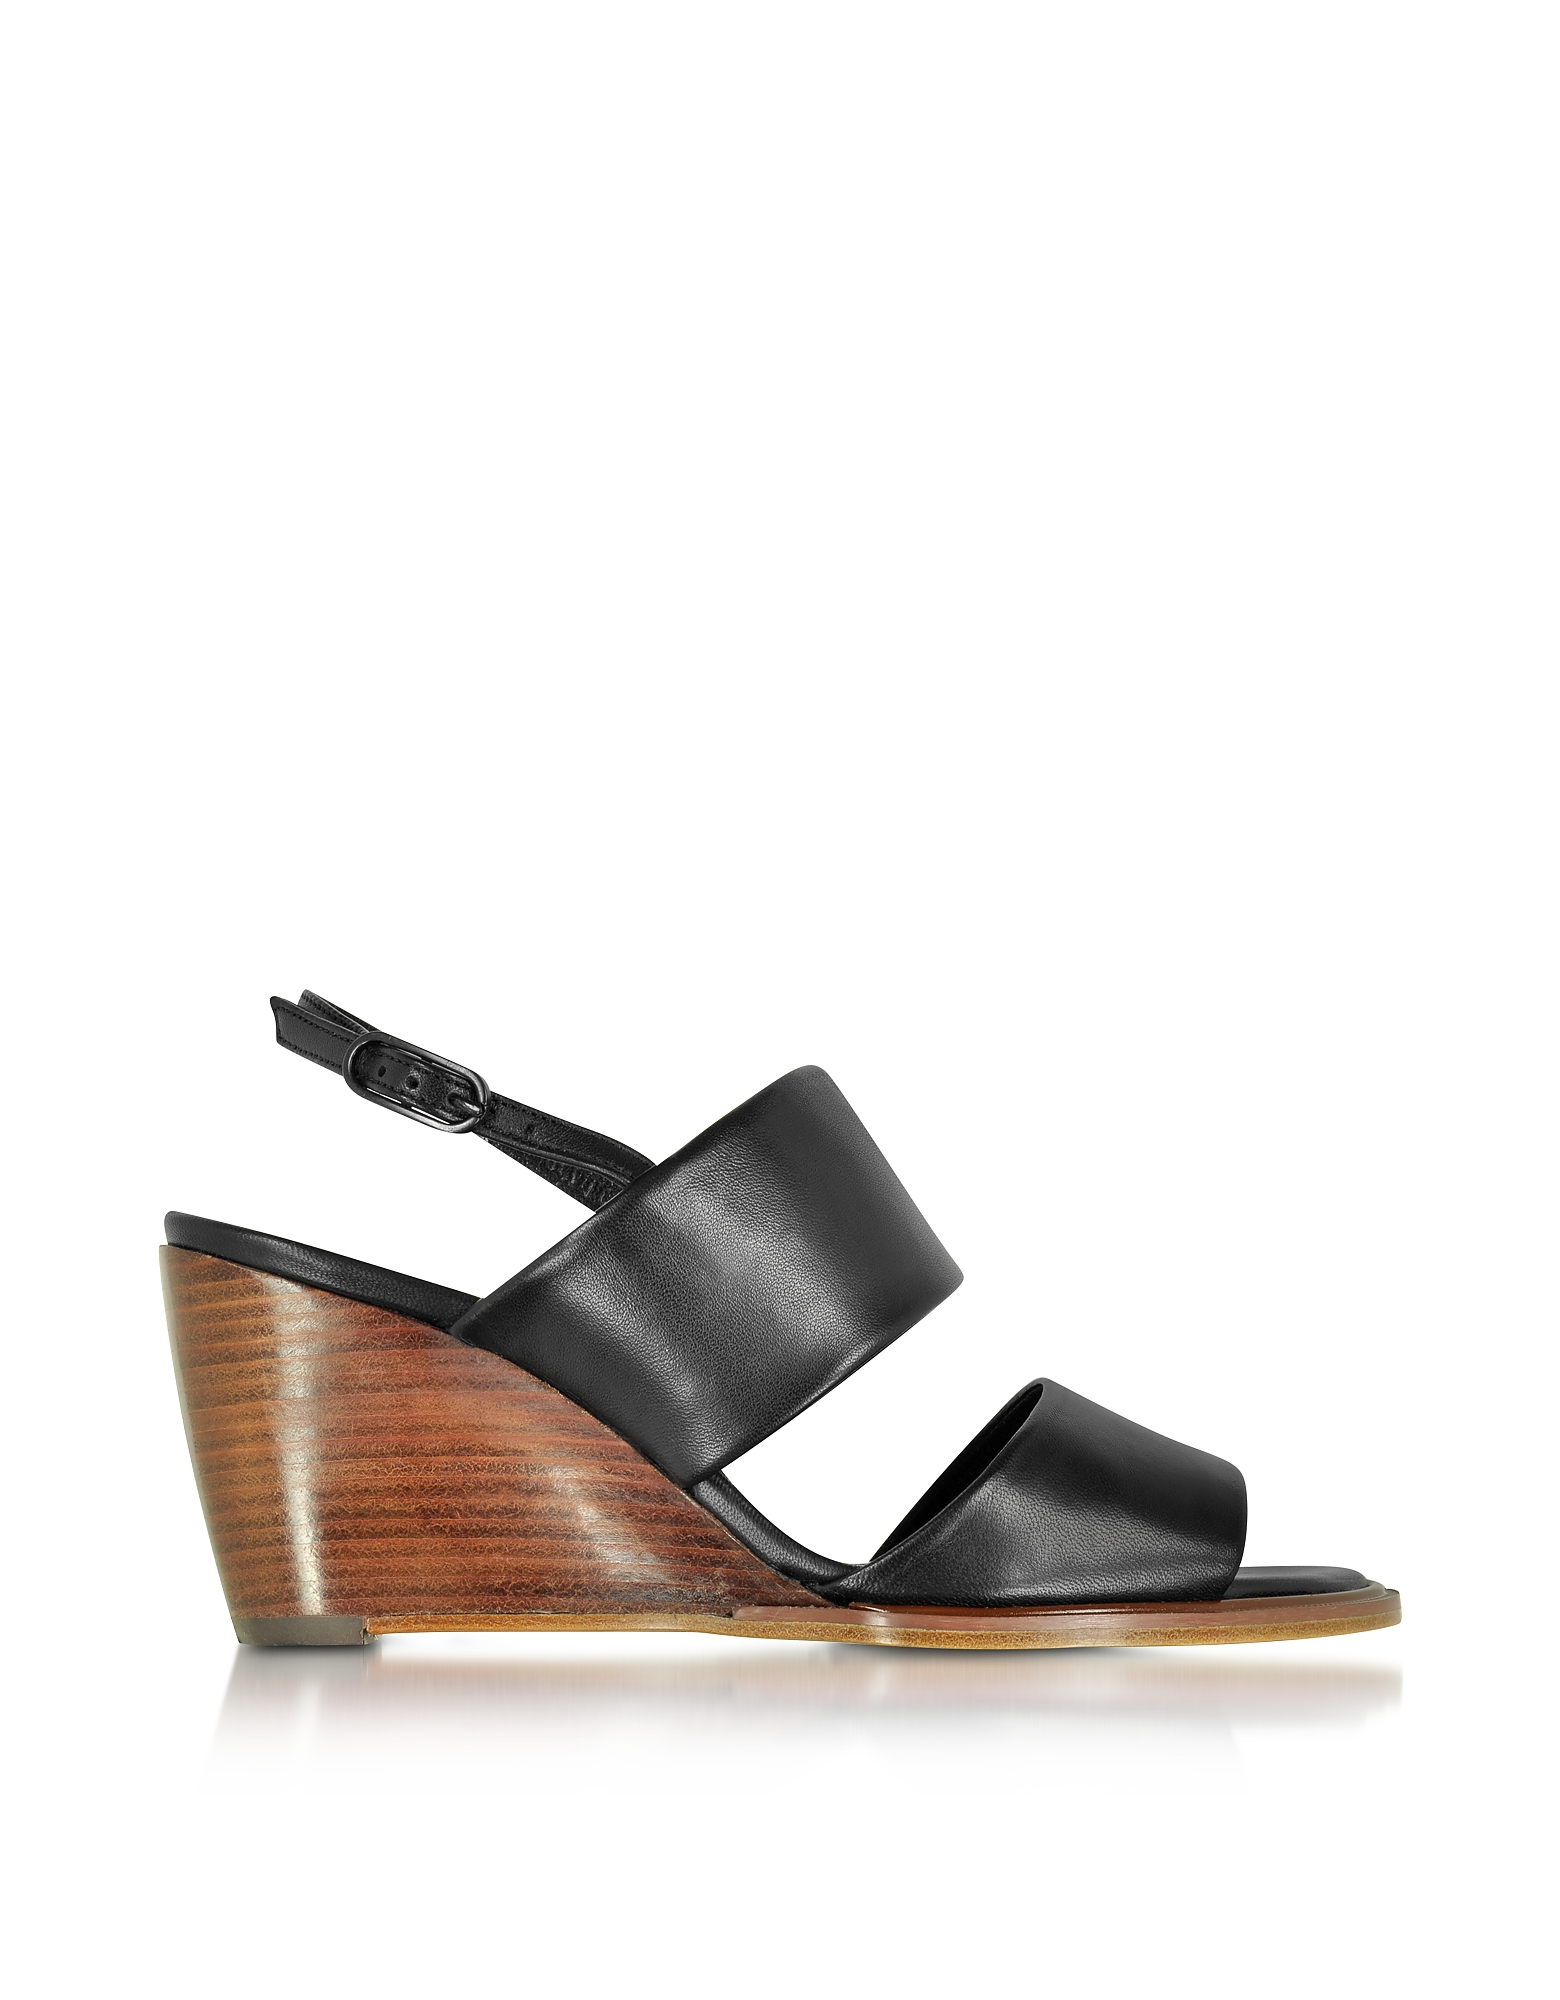 Robert Clergerie Shoes, Gumi Black Leather Wedge Sandal